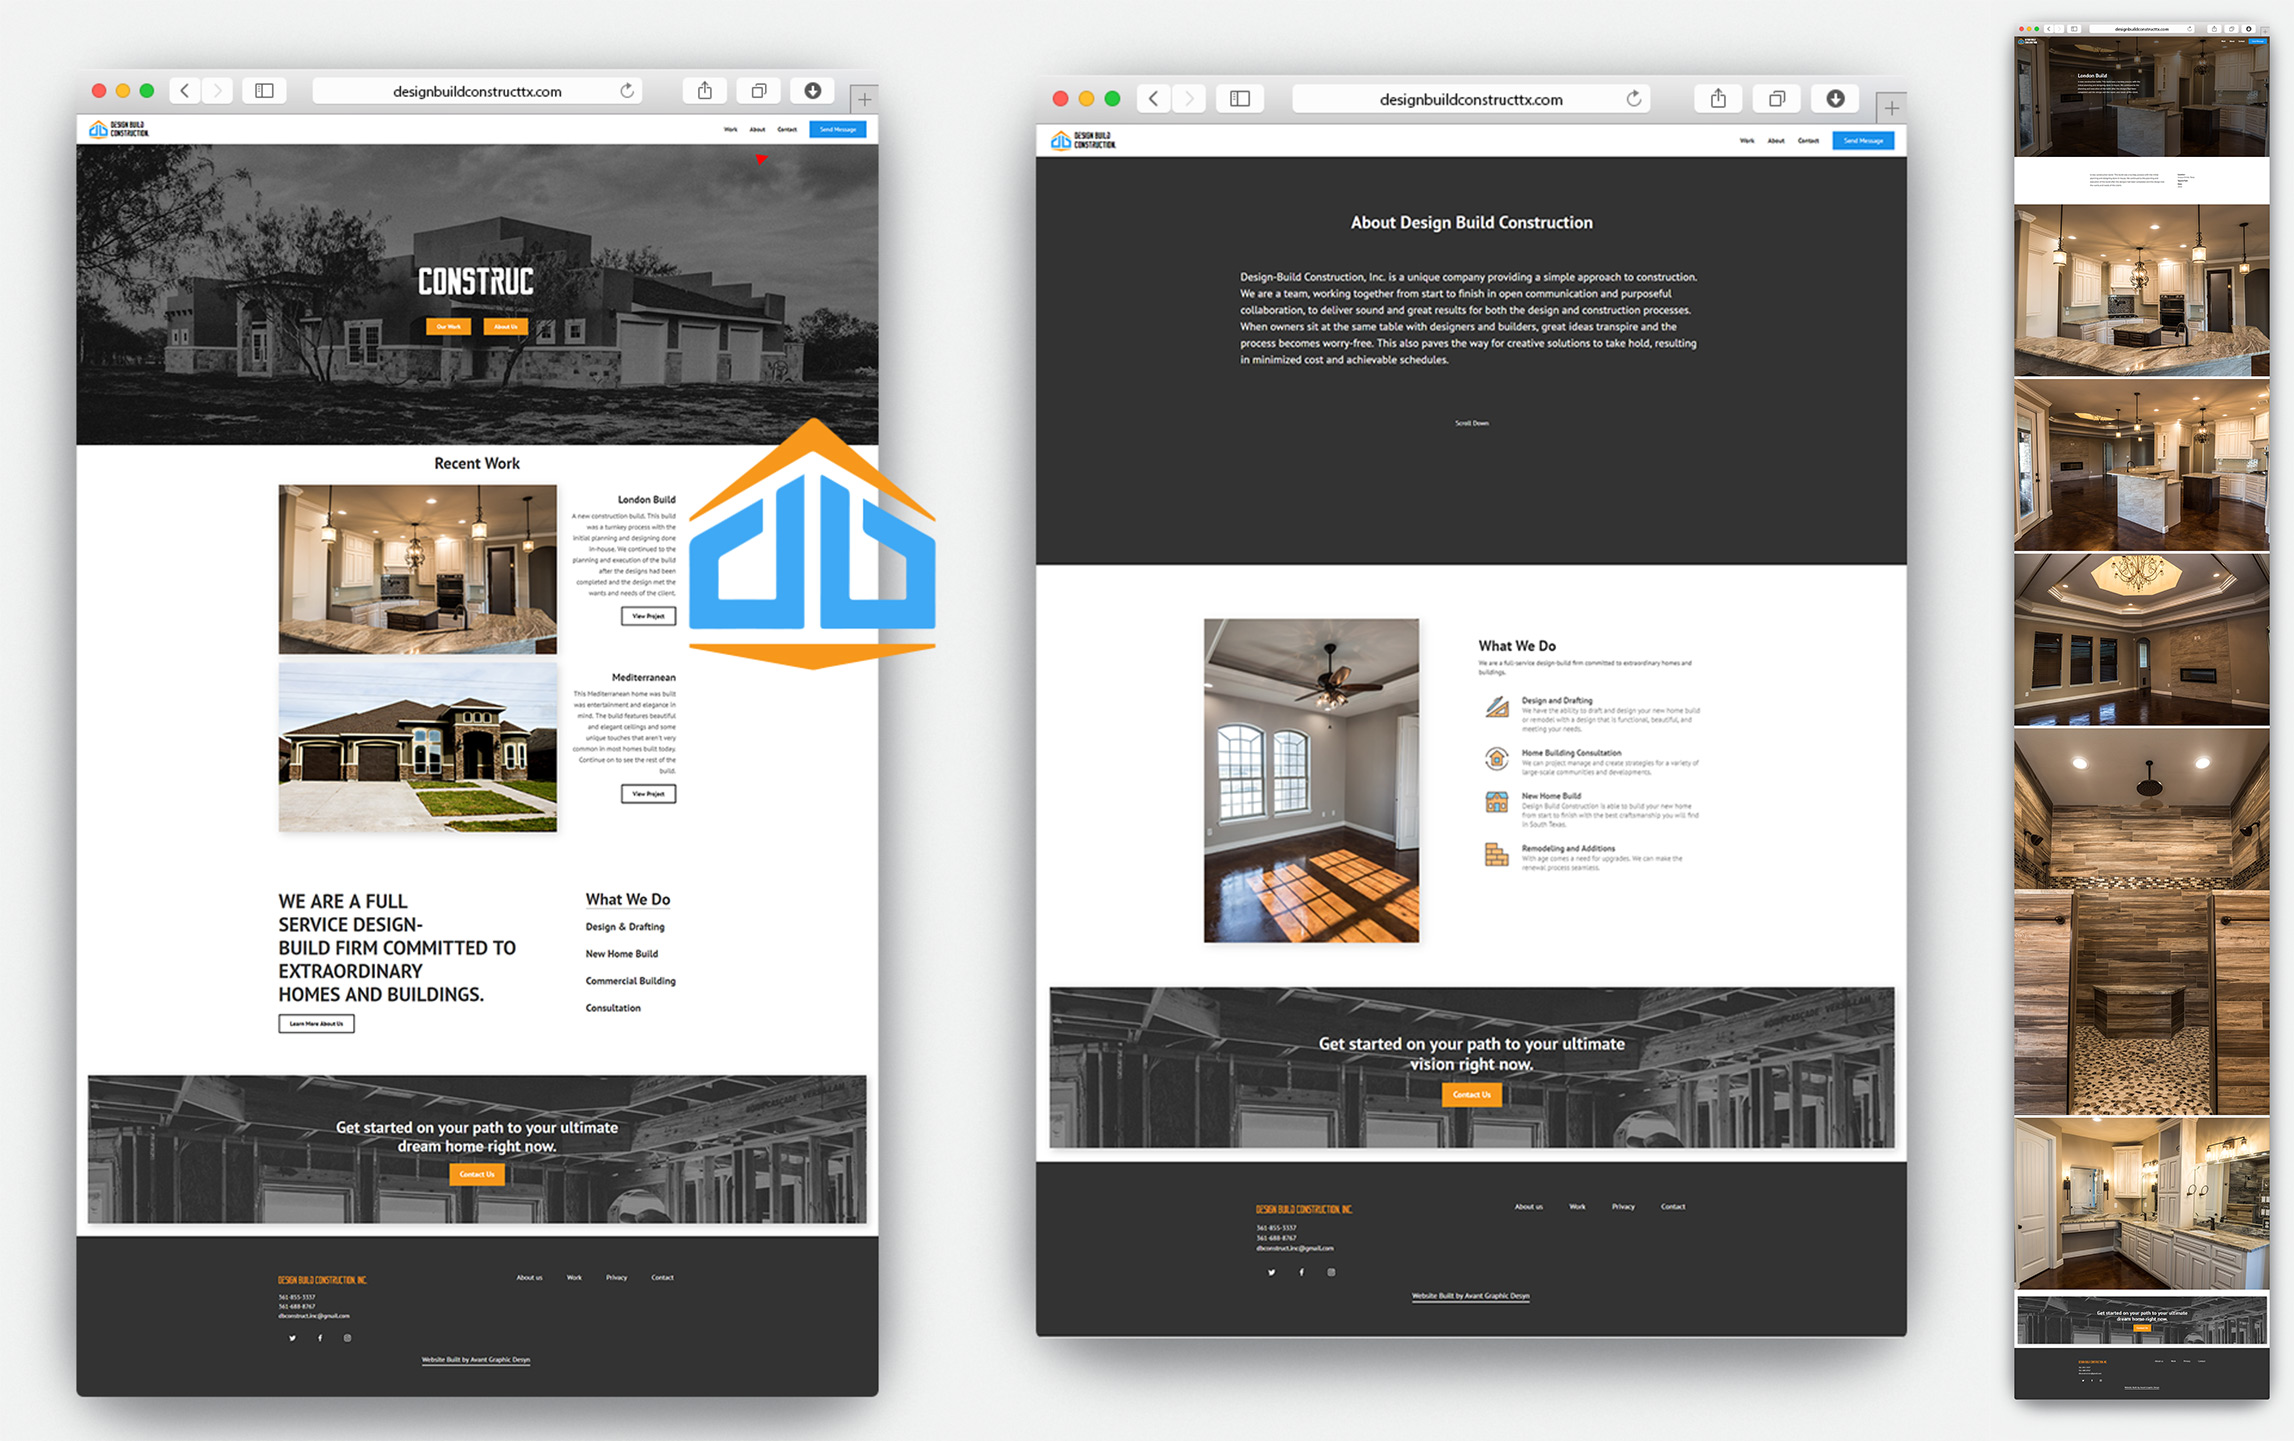 pages for design build construction